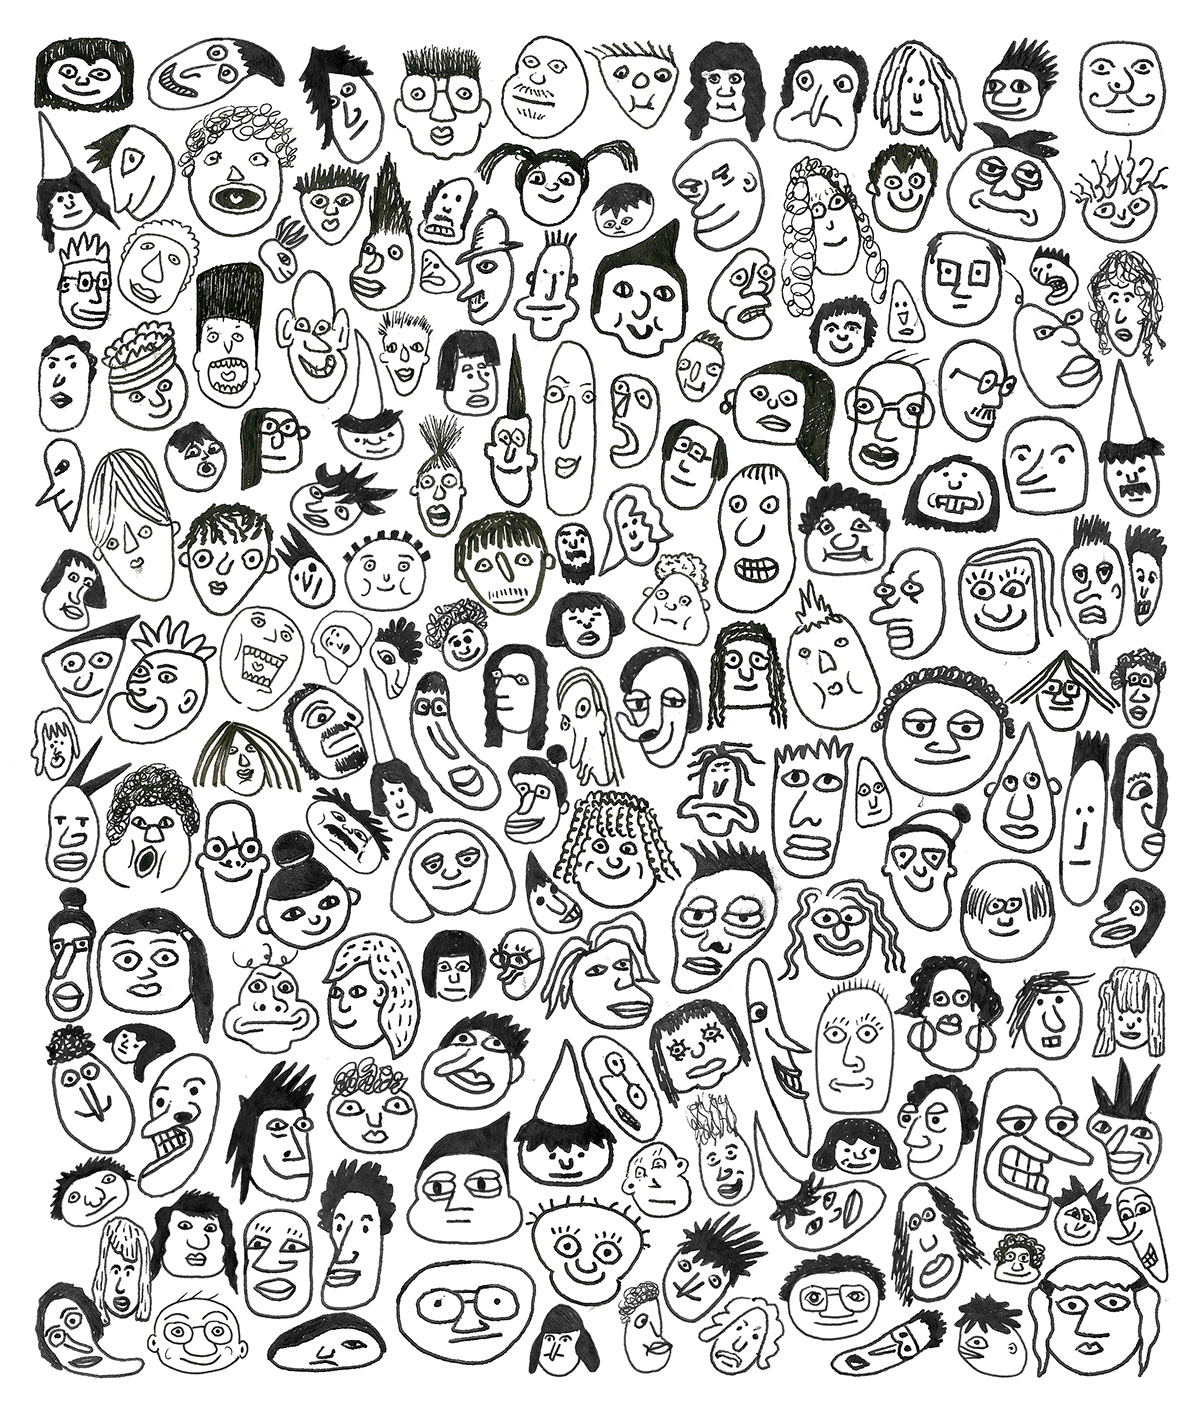 doodles imagination faces portraits characters sketches pattern funny pen